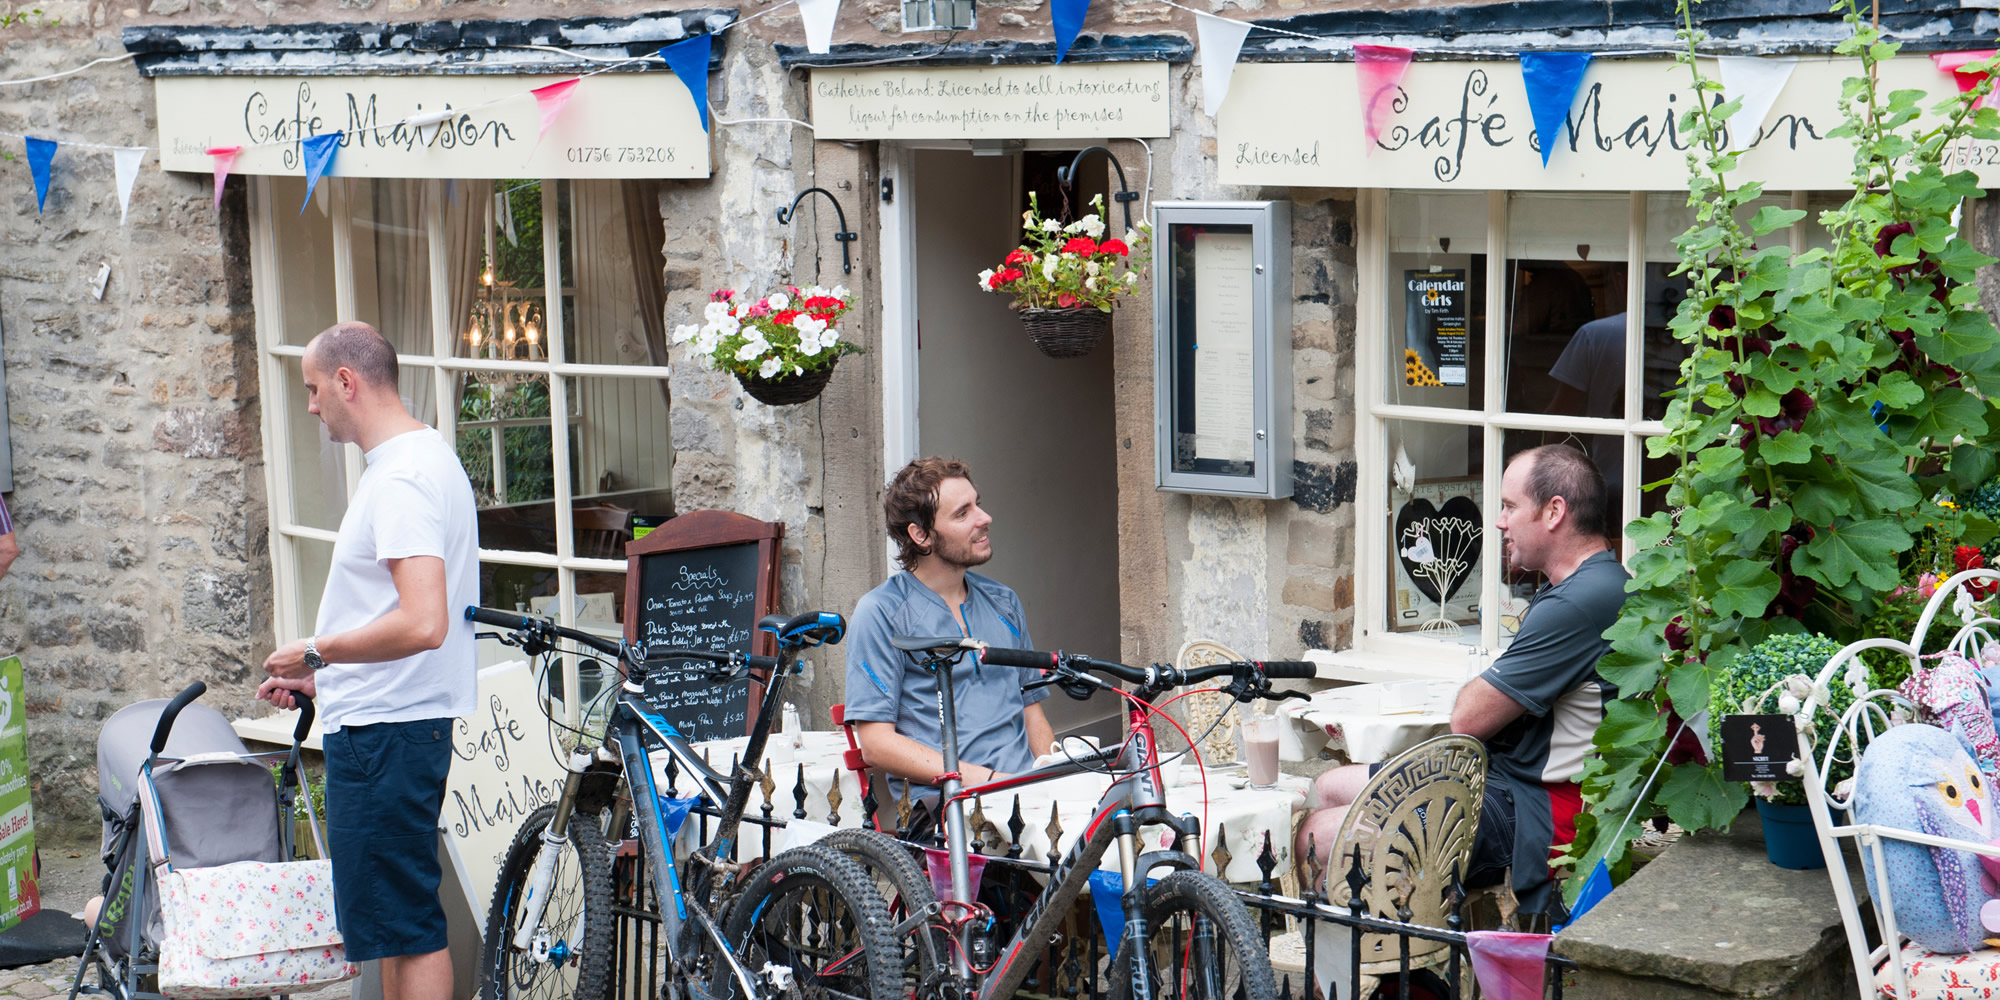 Cyclists relaxing outside a cafe hung with colourful bunting